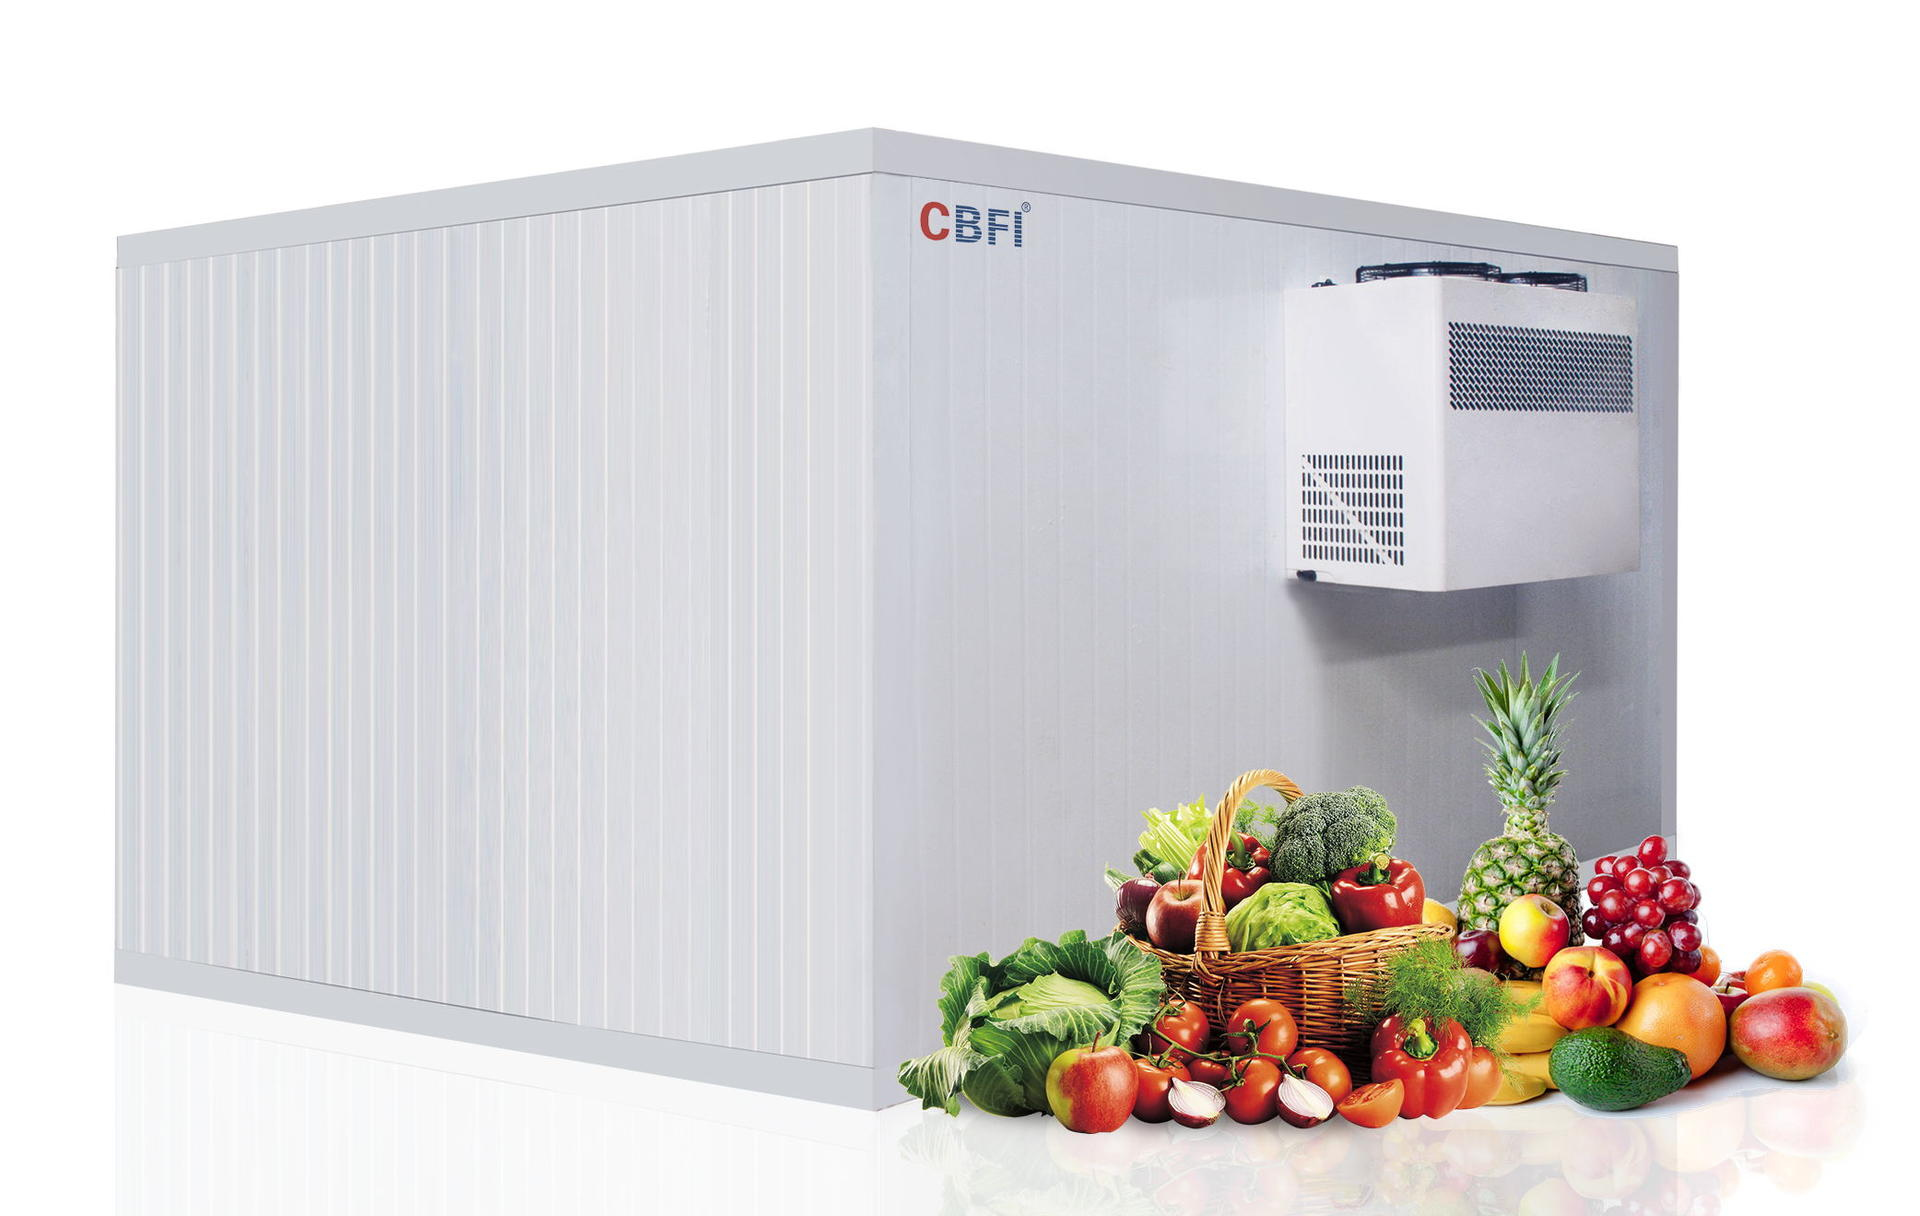 CBFI CYL Series Intelligent Cold Room Units With Compact Design